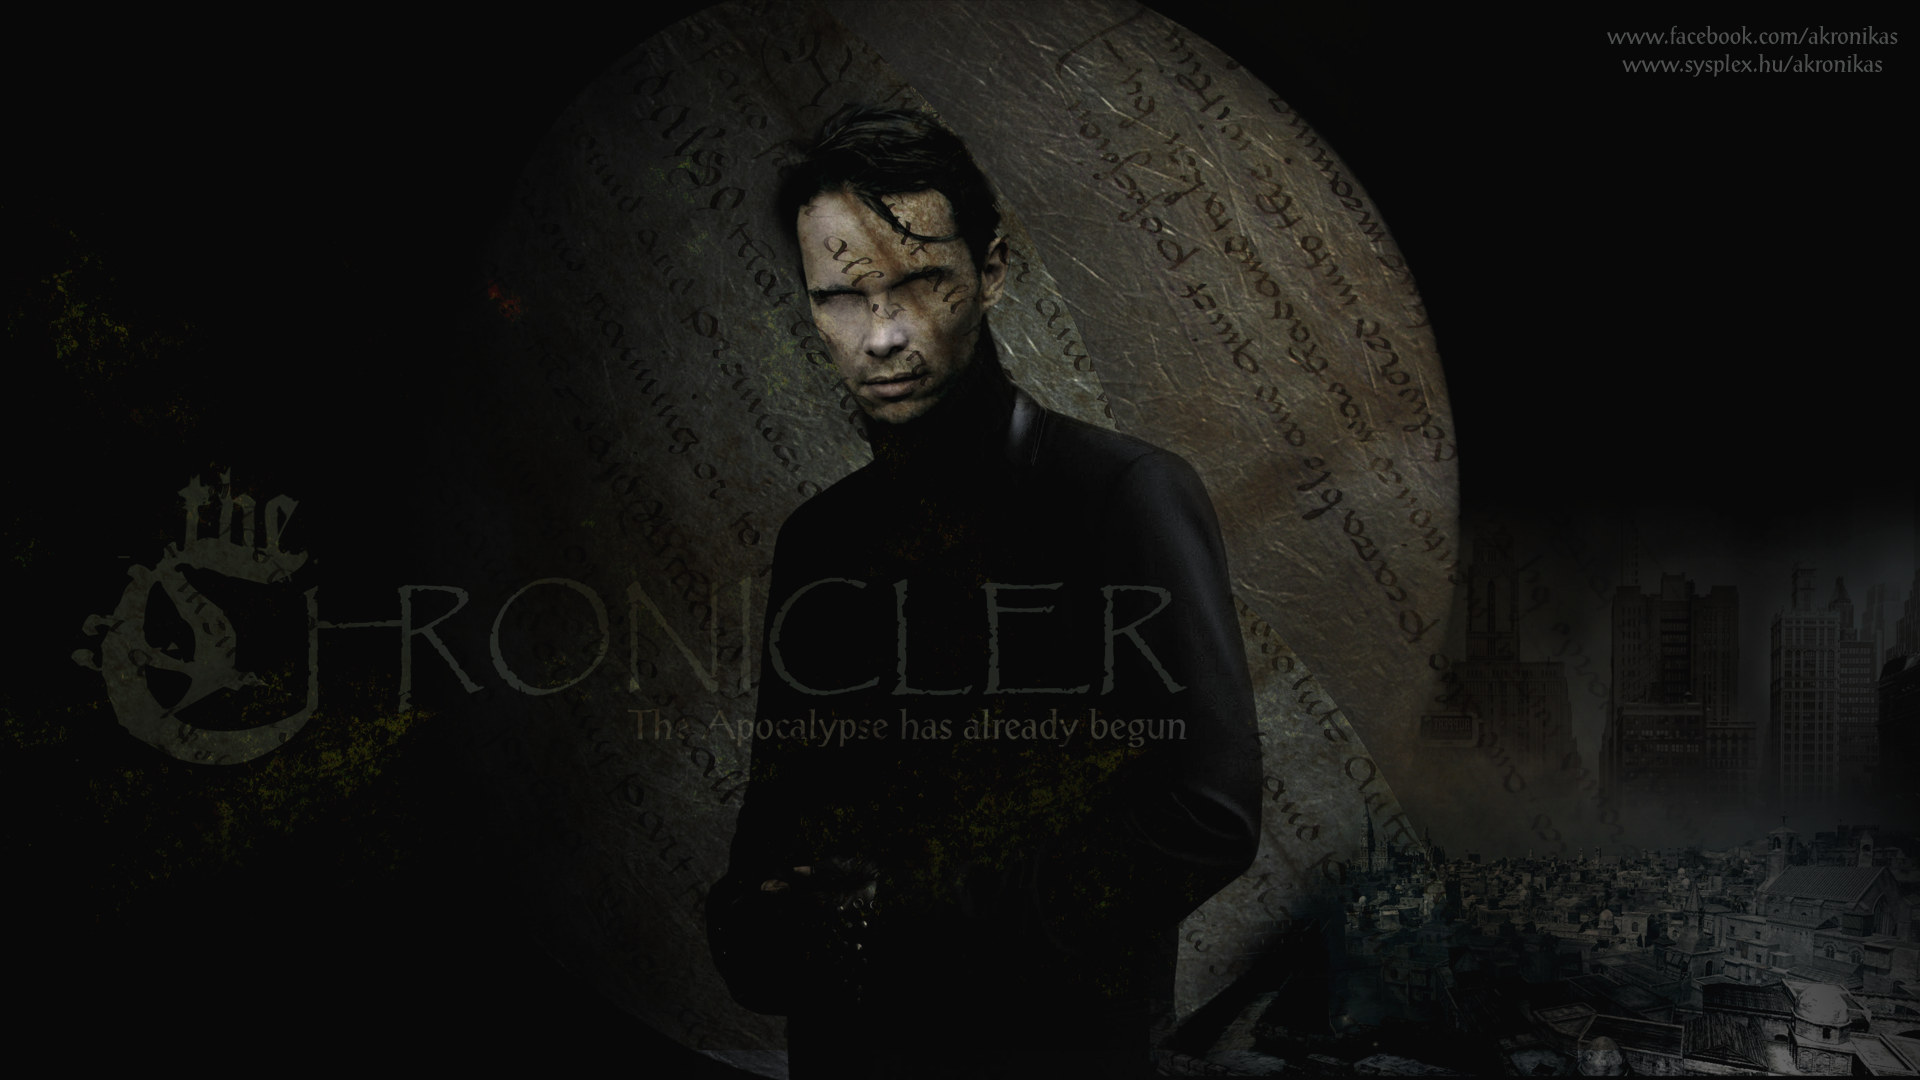 The Chronicler Concept art (2) for my TV series